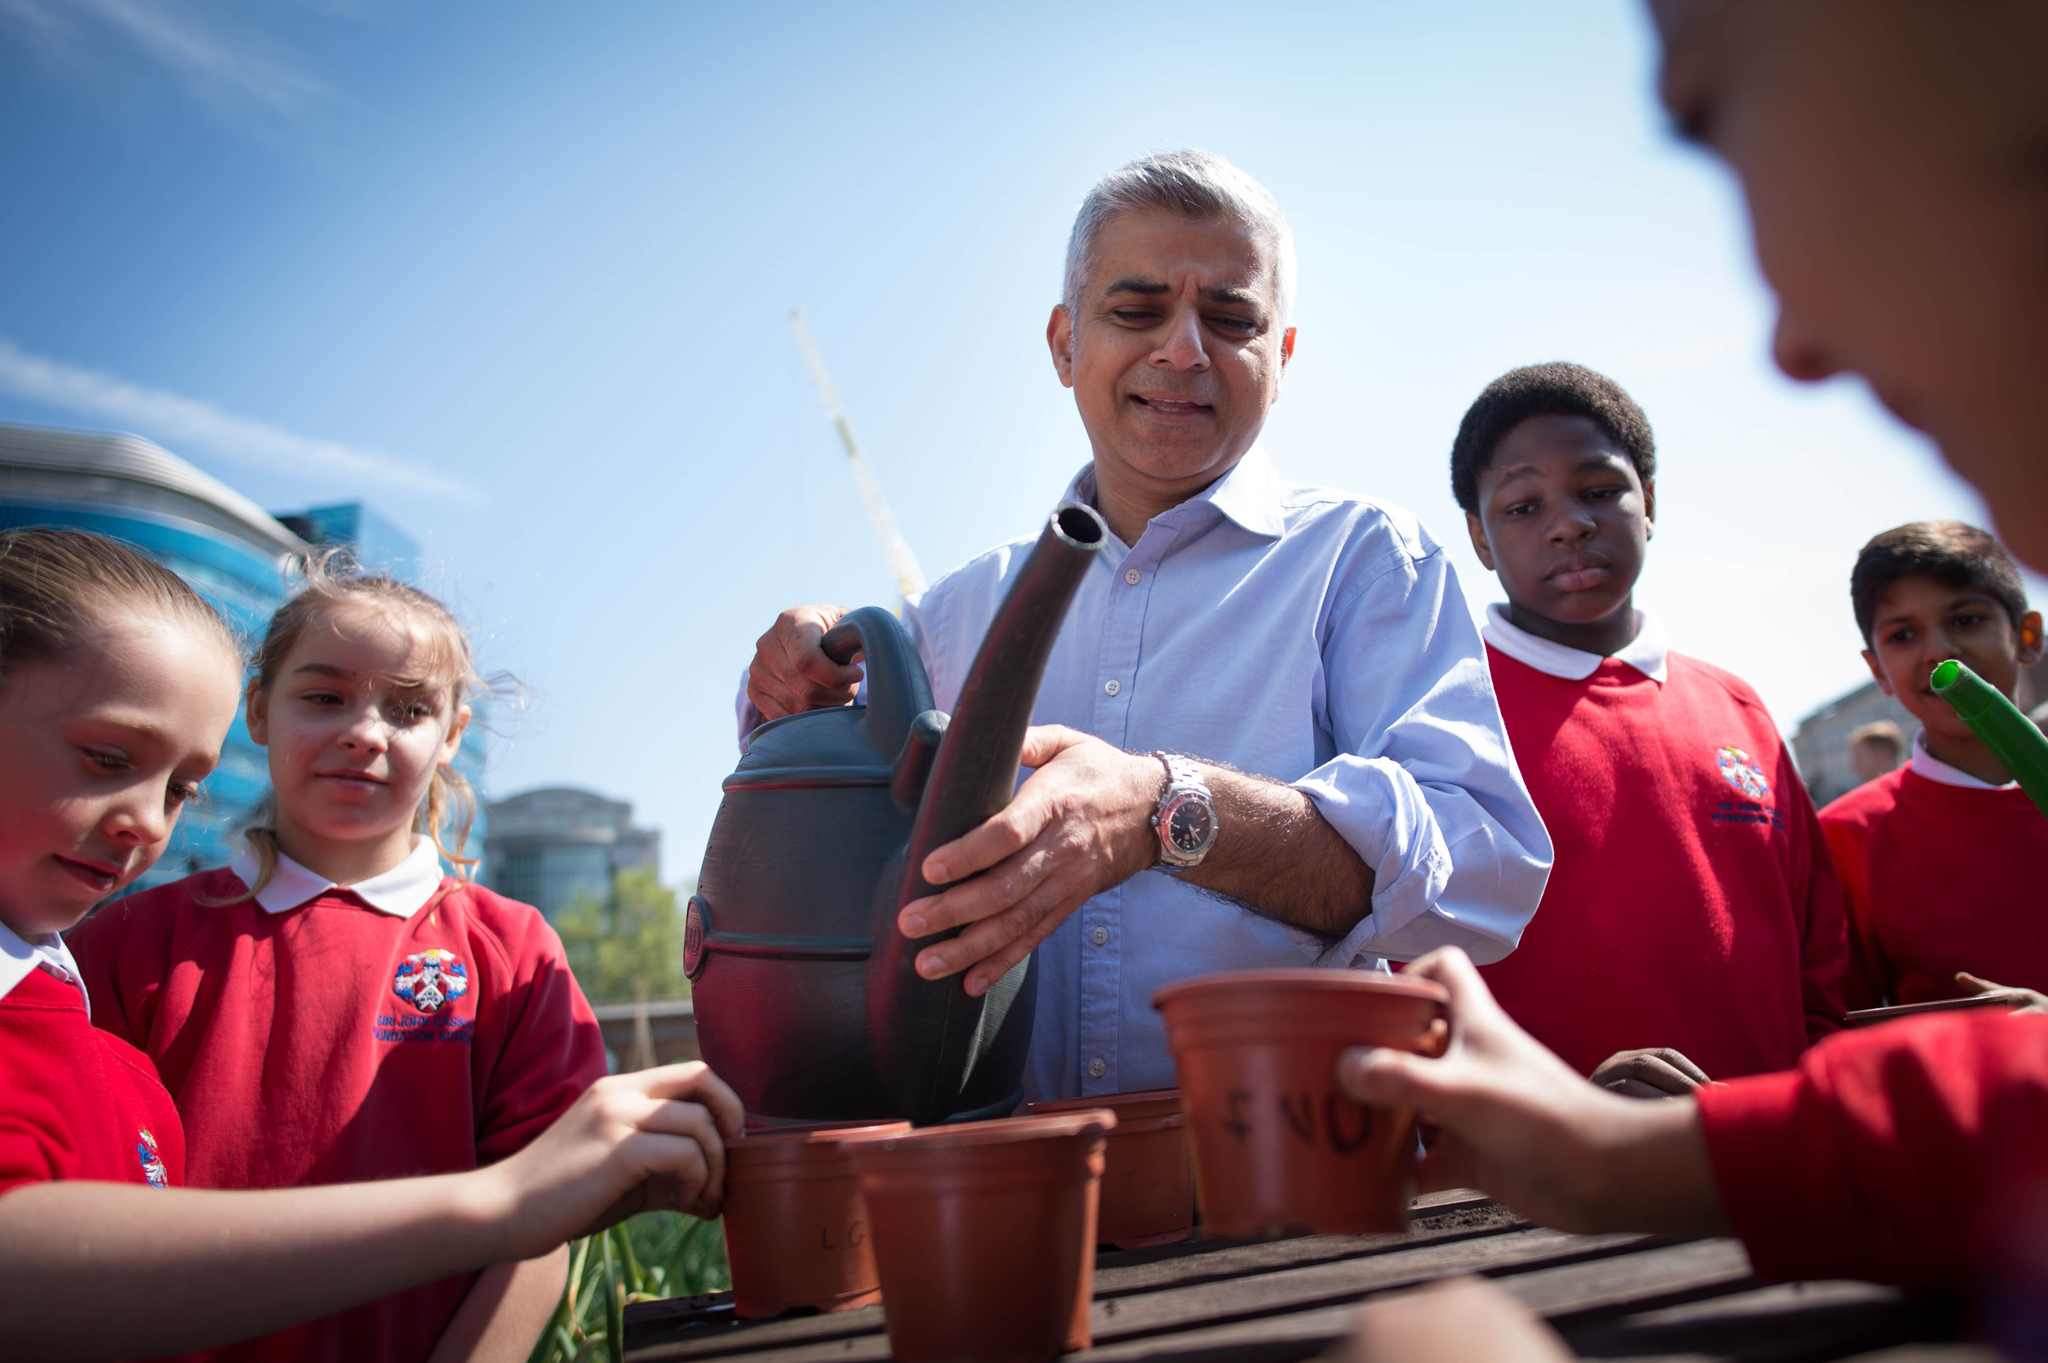 Mayoral visit to Sir John Cass's Foundation Primary School...Newly elected Mayor of London, Sadiq Khan, meets pupils at Sir John Cass's Foundation Primary School in the City of London, where he helped the children plant seeds and flowers on their green roof garden after seeing an air pollution monitoring station in the playground. PRESS ASSOCIATION Photo. Picture date: Friday May 13, 2016. Mr Khan has promised to clean up London's toxic air - as he revealed he has only recently started suffering from asthma. See PA story POLITICS Khan. Photo credit should read: Stefan Rousseau/PA Wire